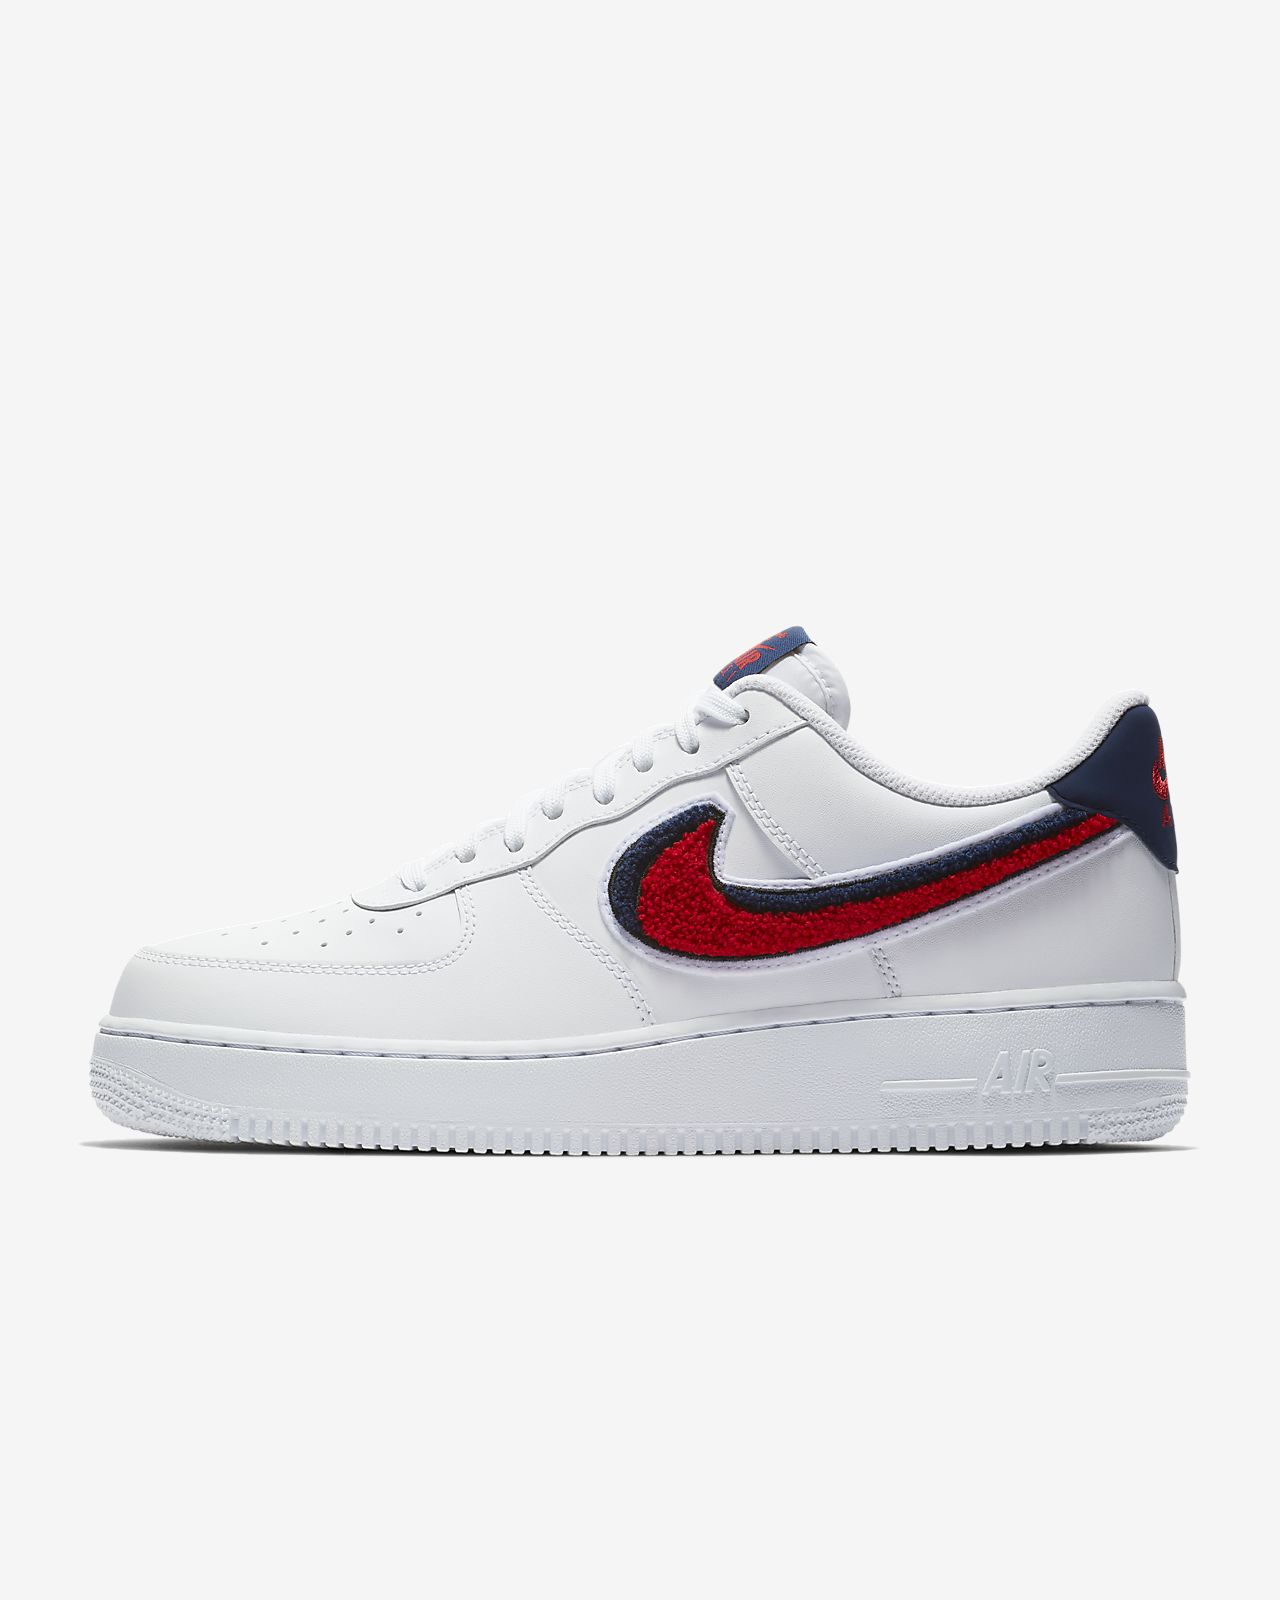 56510a08ee7 nike air force 1 low